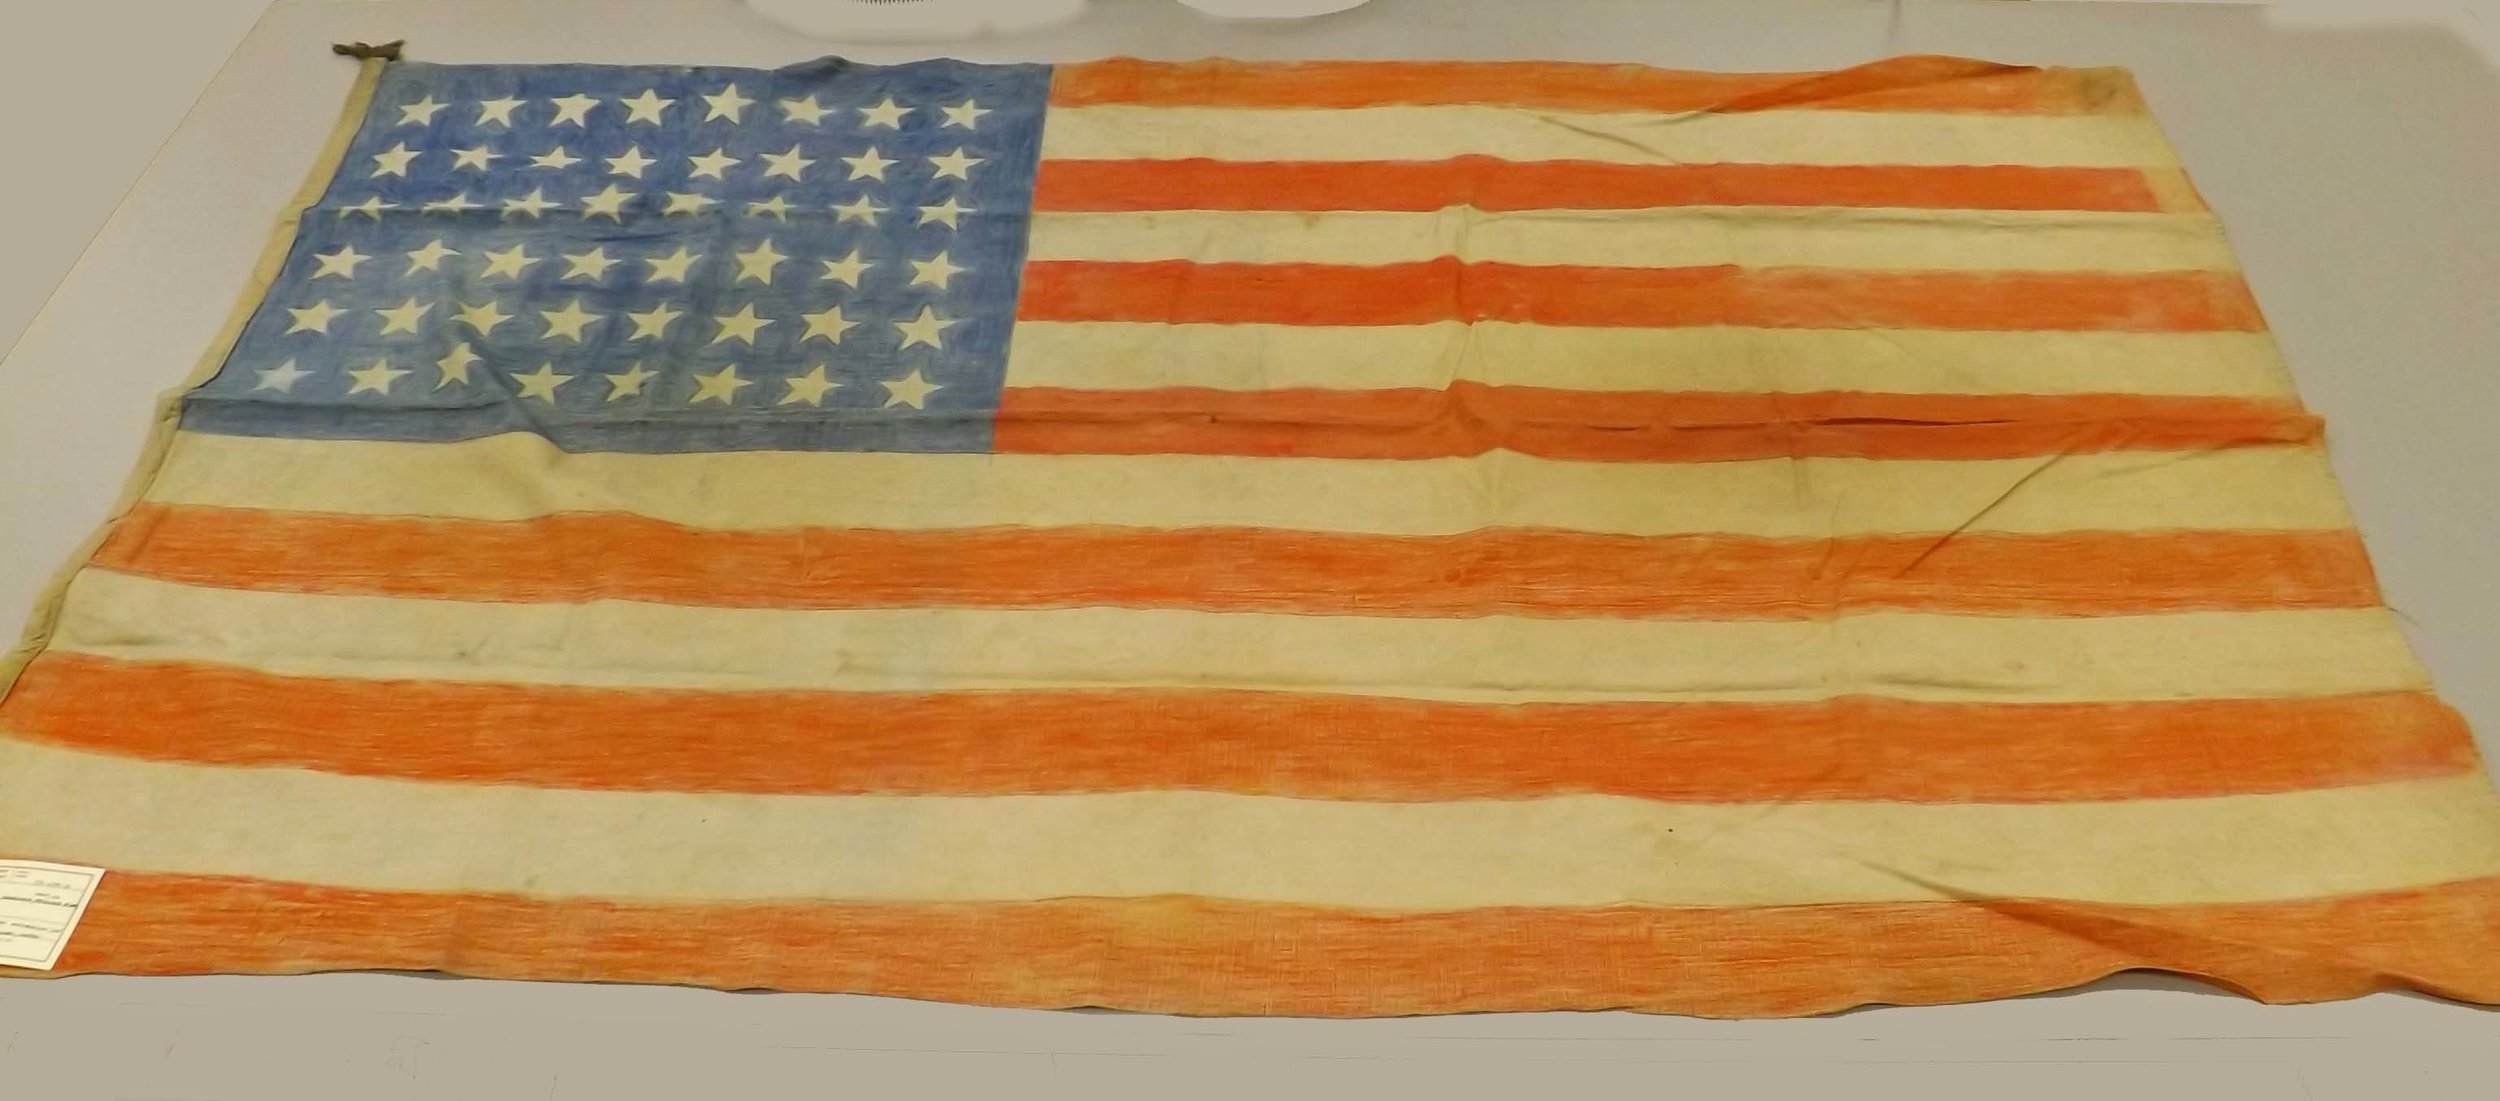 James D. Landrum carried the U.S. flag in these photos. The flags were carefully created by the POWs using bedsheets and colored pencils and were a tremendous symbol of pride for these men, some who were regaining their freedom after three years and eight months working at hard labor under deplorable conditions.